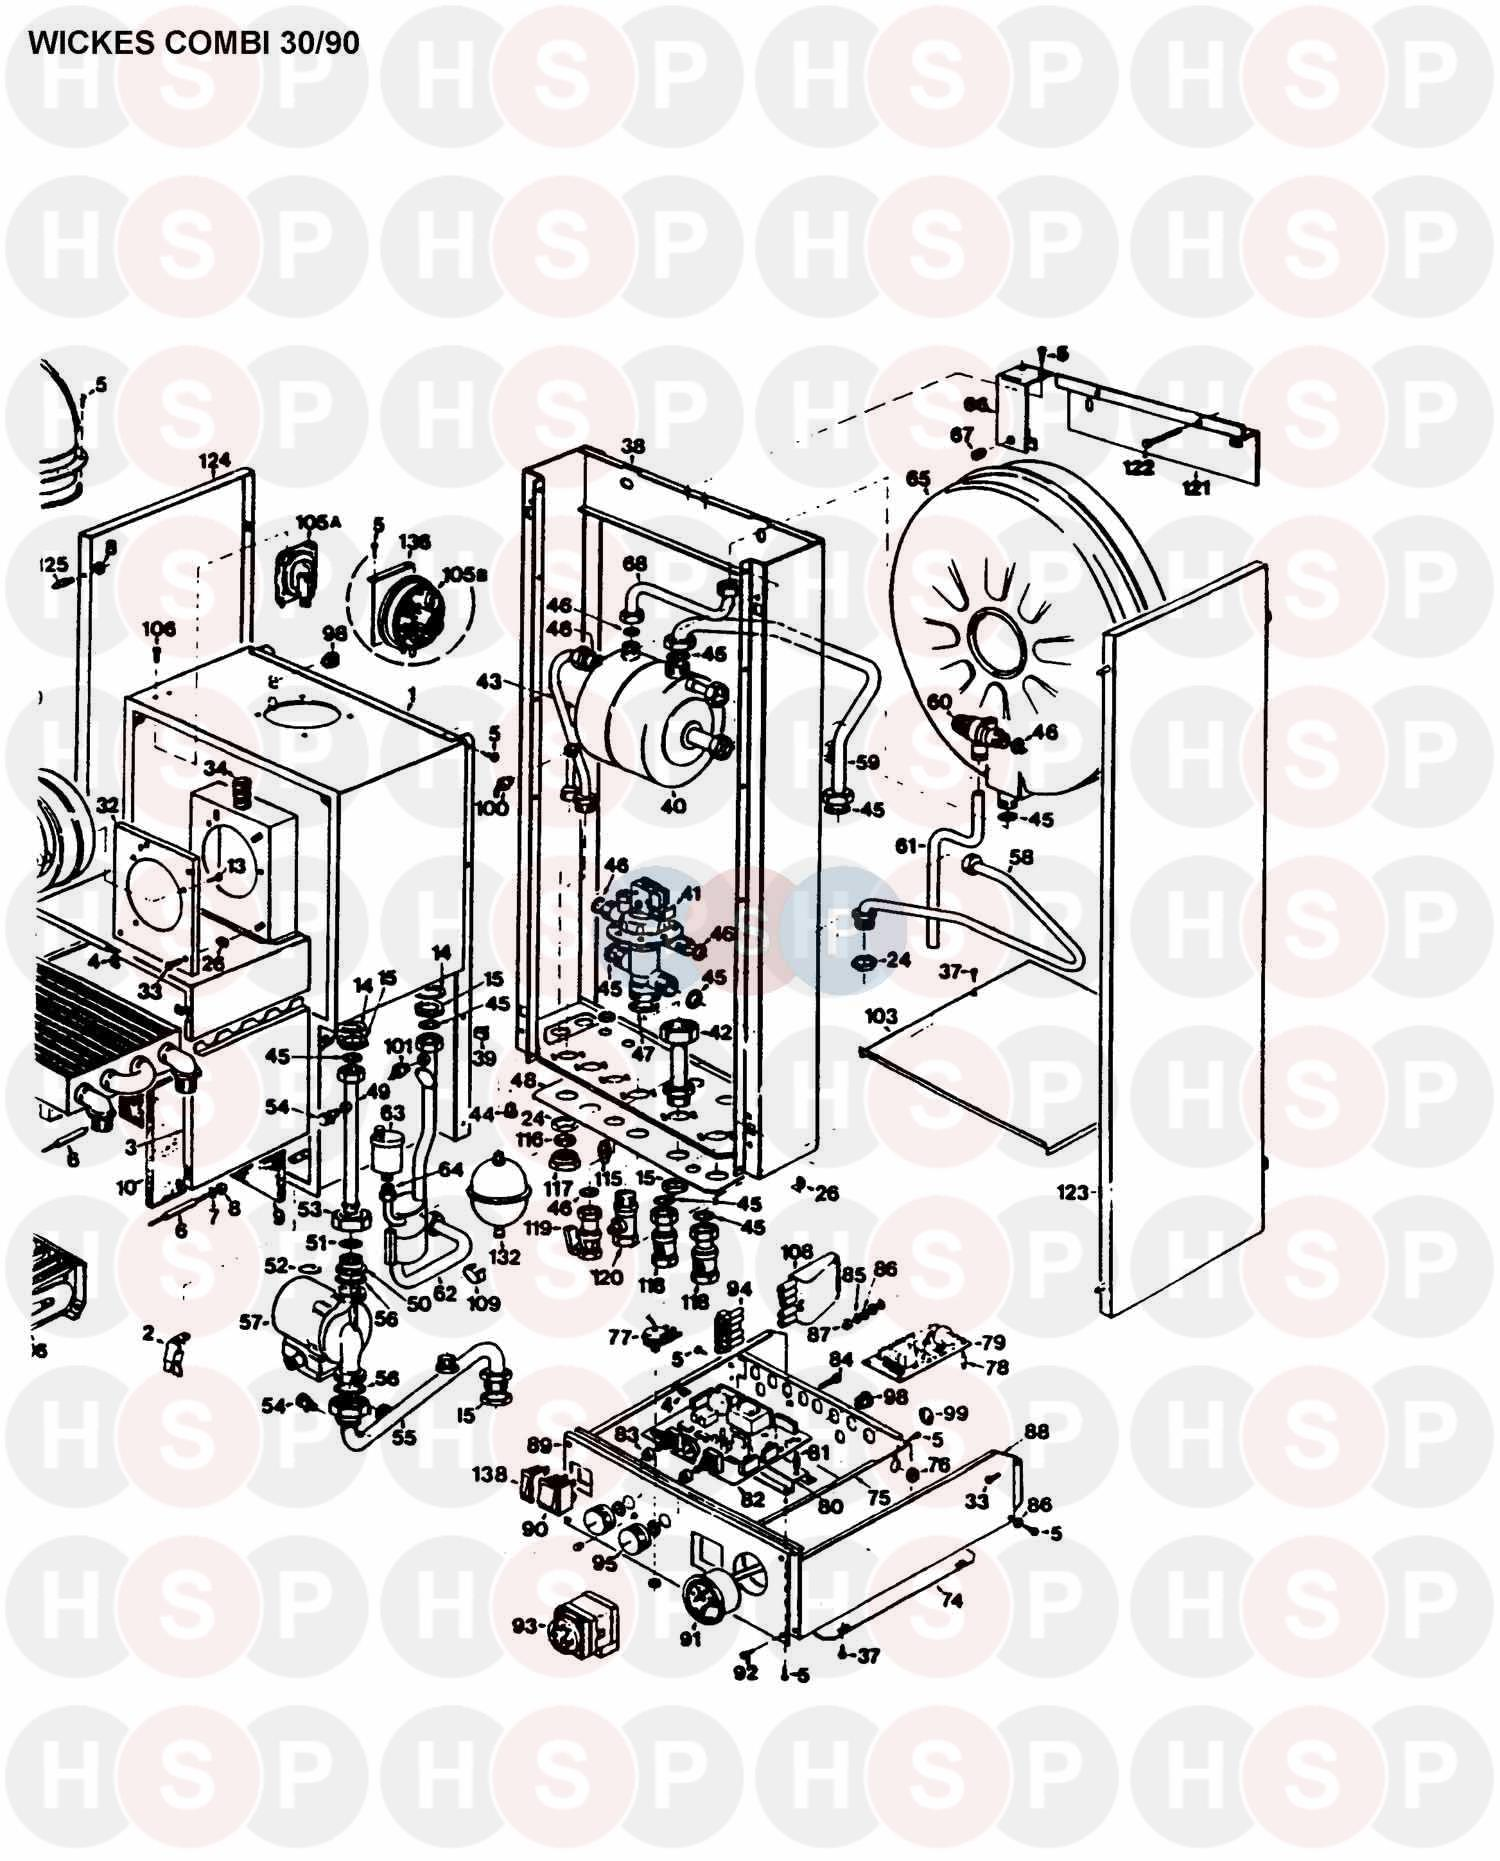 Halstead WICKES COMBI 30/90 (BOILER ASSEMBLY 2) Diagram